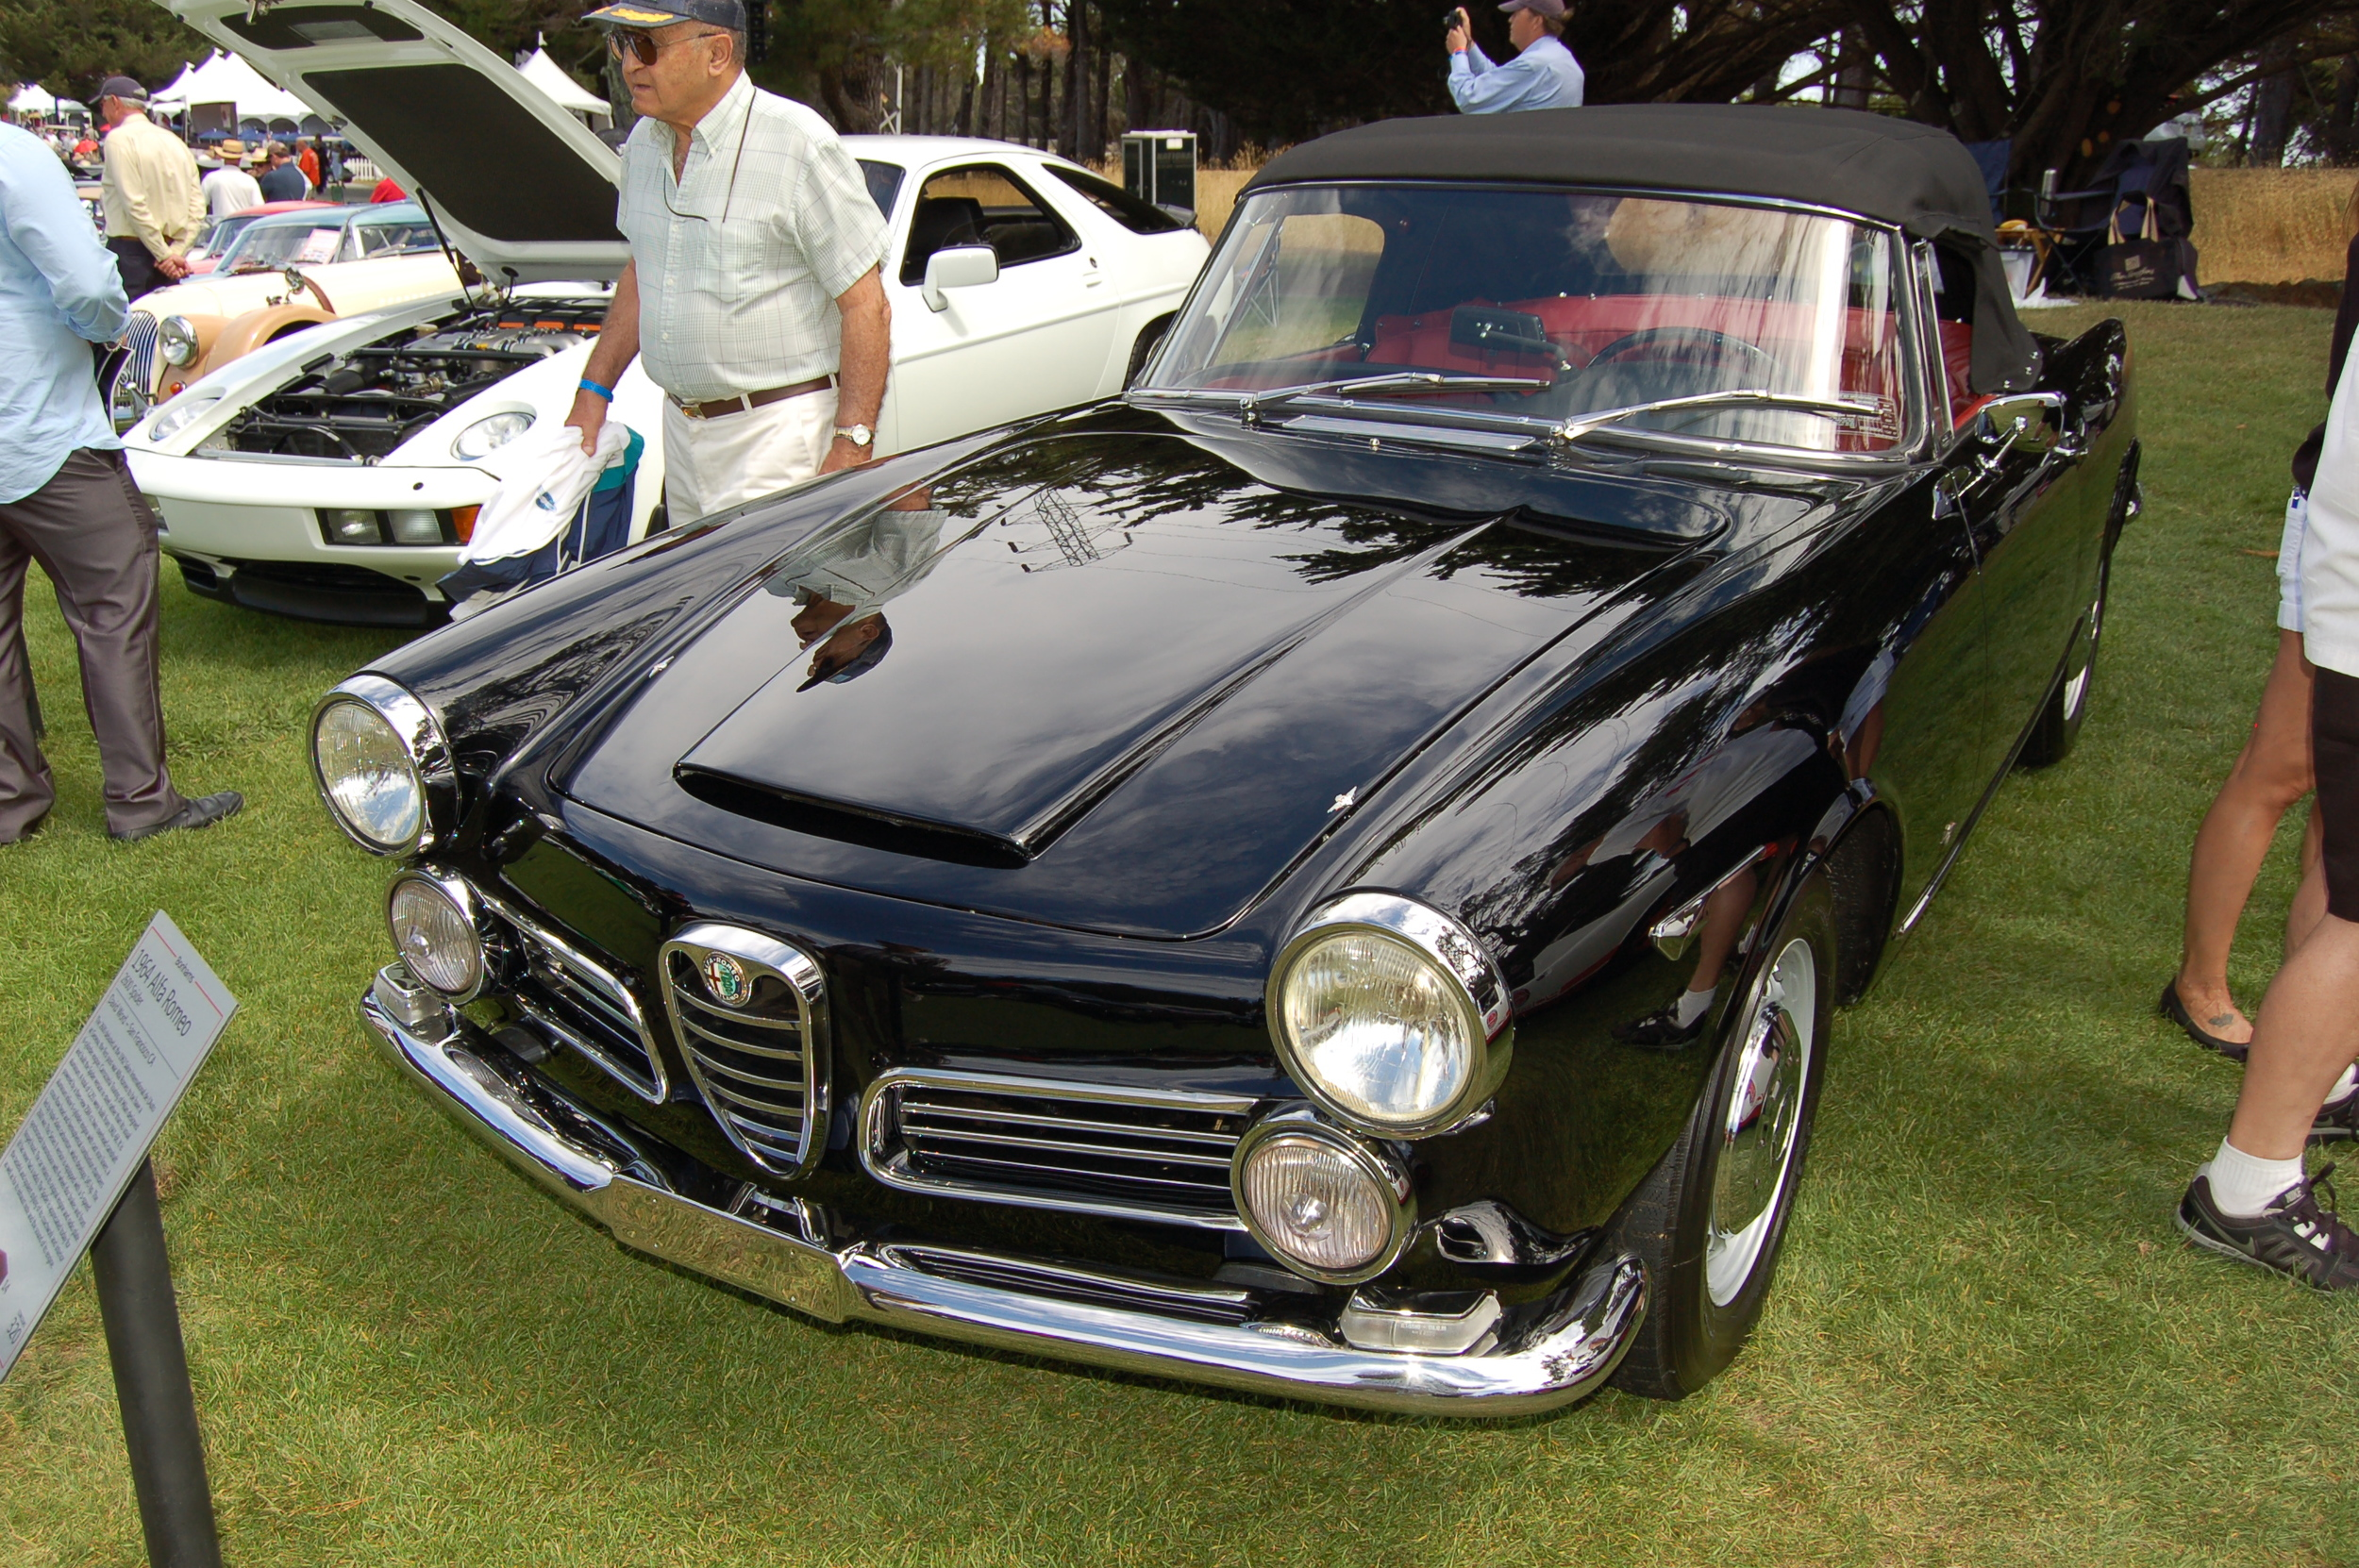 A super well-kept Porsche 928 managed to beat this 1964 Alfa Romeo 2600 Spider in the Concours.